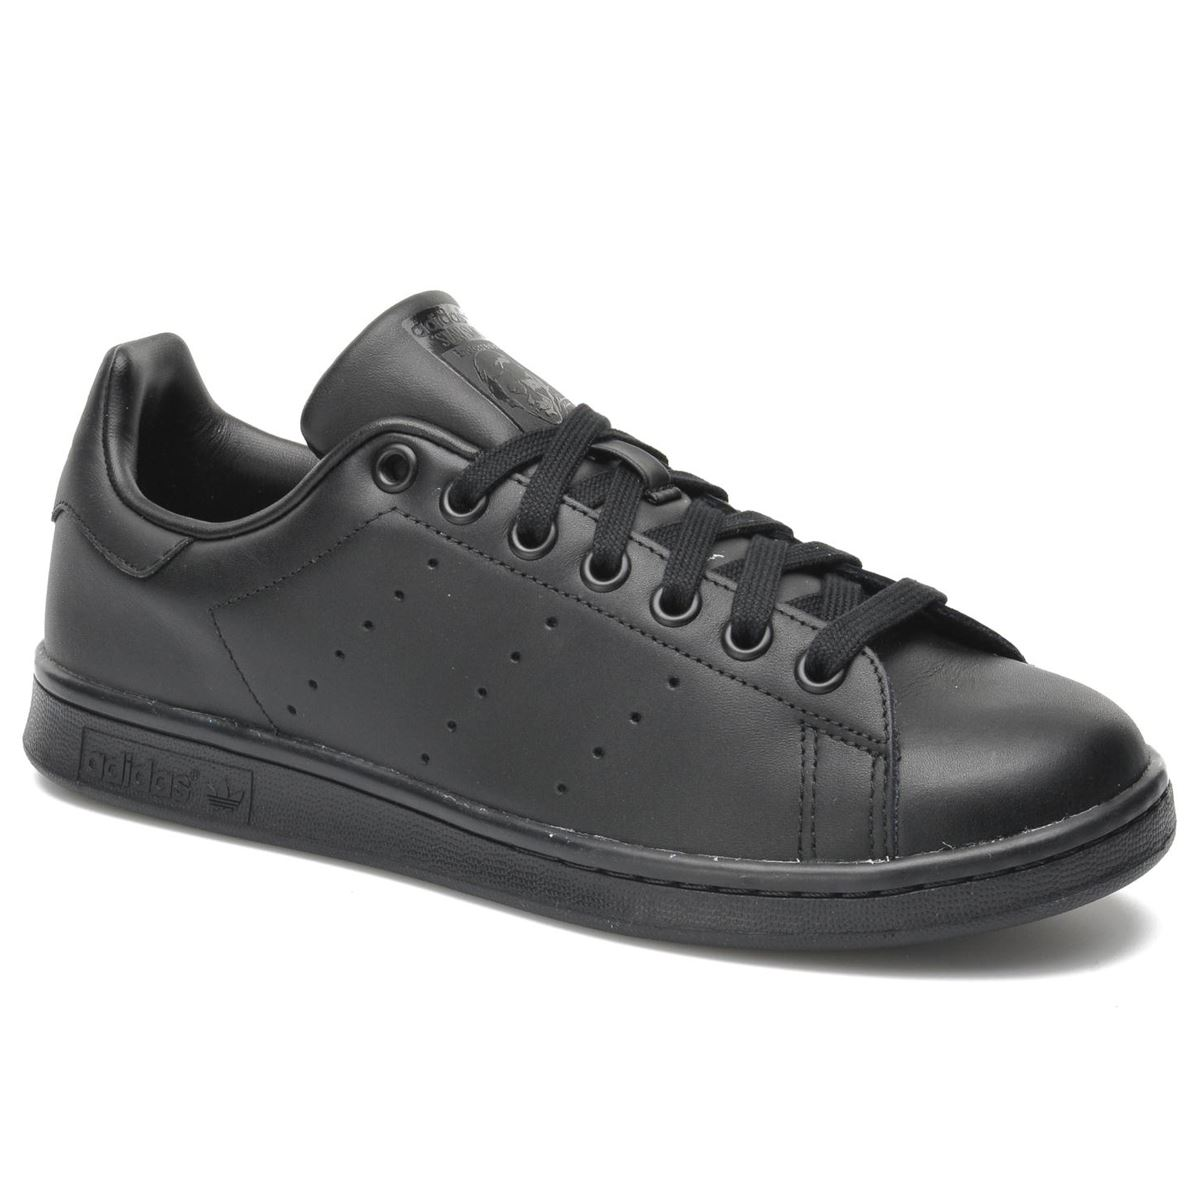 Hombre adidas superstar Professional sizing   Allied Health Professional superstar ac9bad